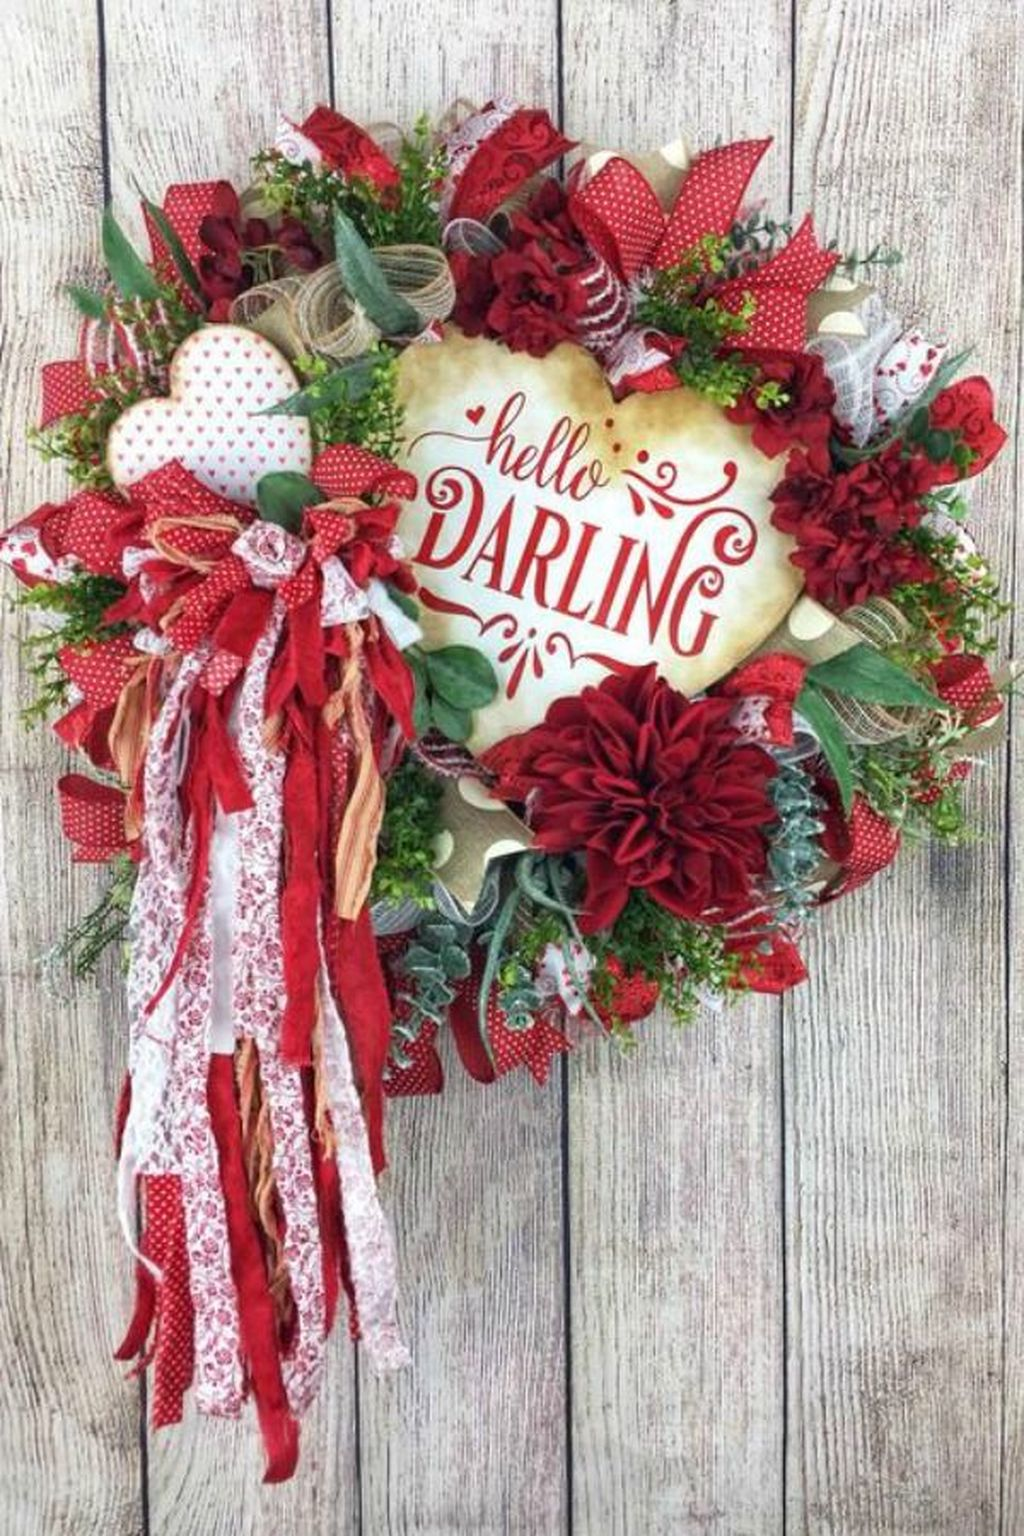 Fabulous Valentine Wreath Design Ideas FOr Your Front Door Decor 01